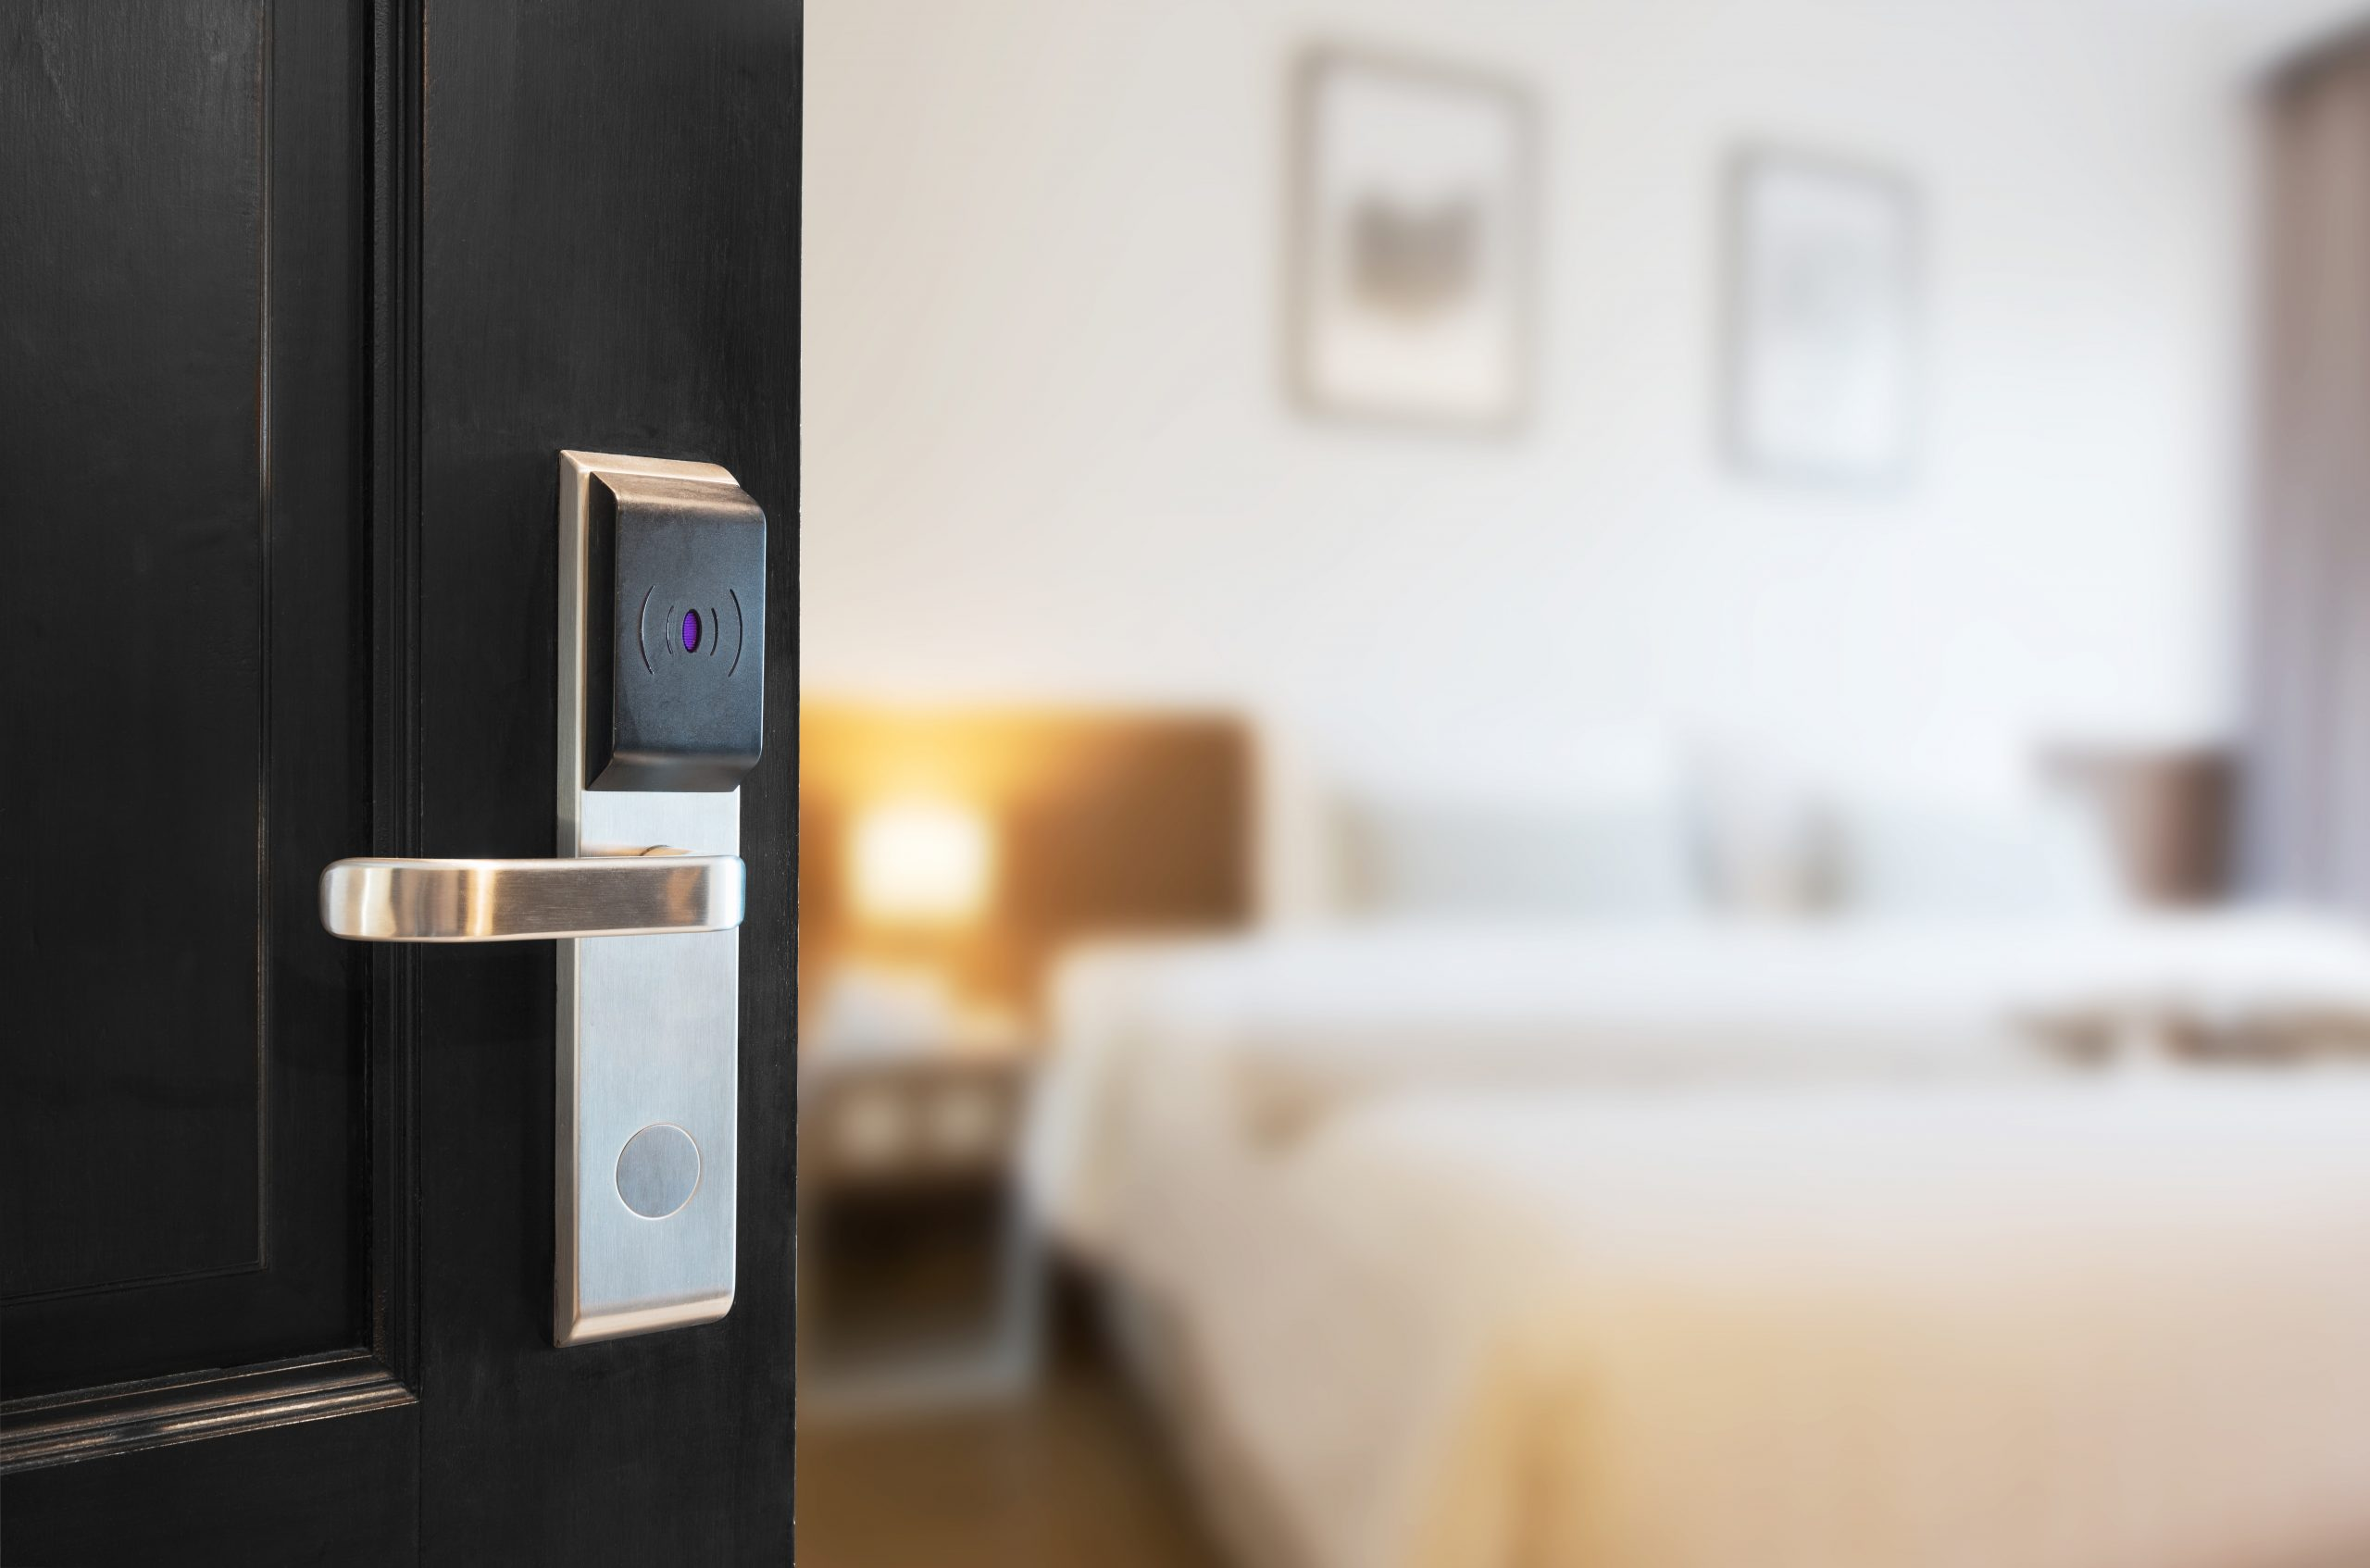 Premier Hotels Are Upgrading to Smart Locks. Here's Why.